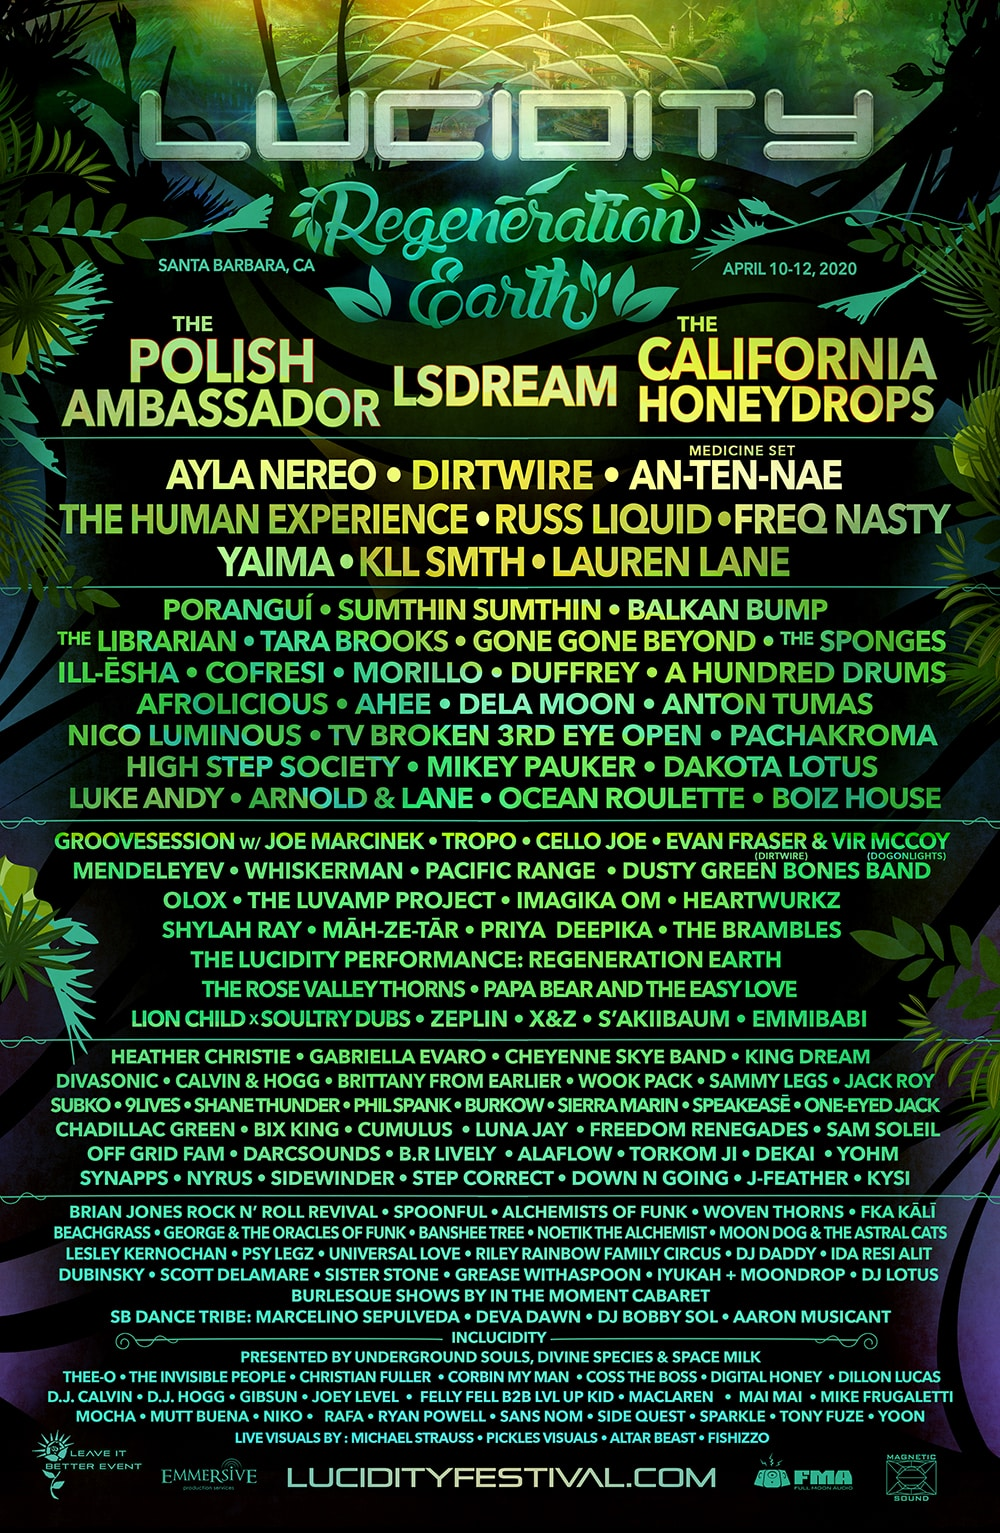 Lucidity Festival Lineup 2020 - Lucidity Festival Reveals 2020 Lineup